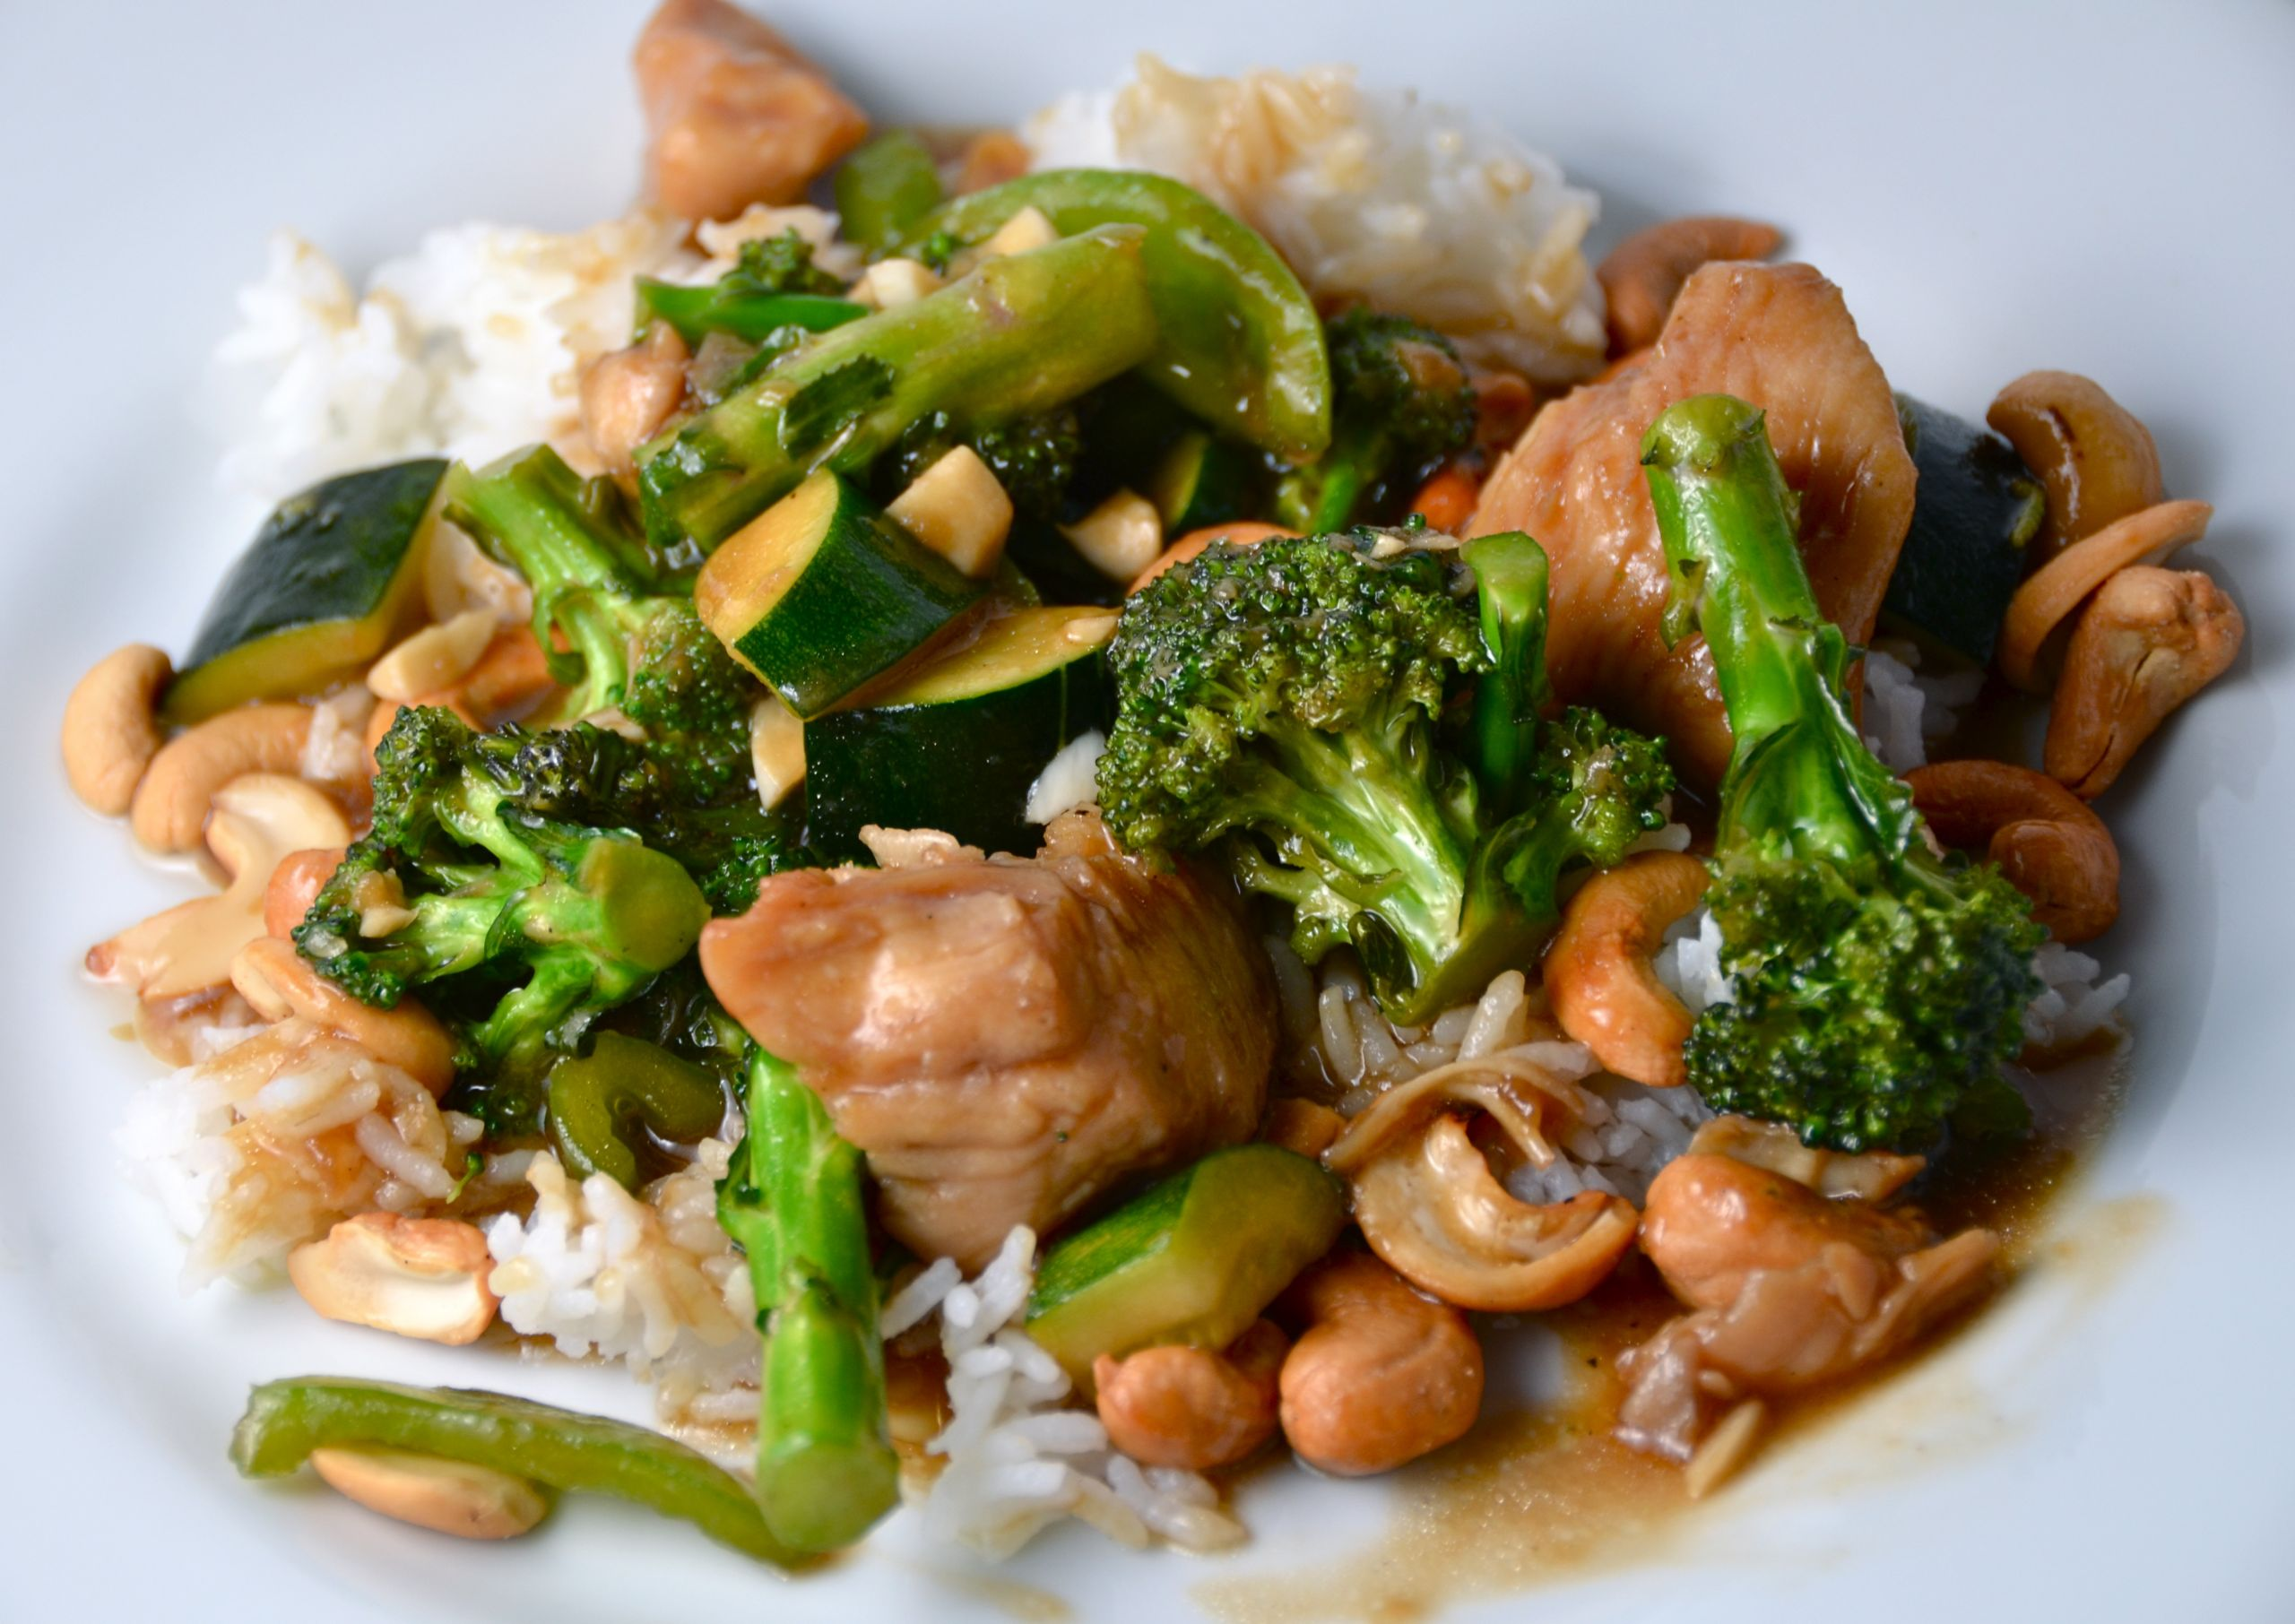 Chinese Chicken And Broccoli Recipes  Chinese Chicken With Broccoli And Cashews New Music From